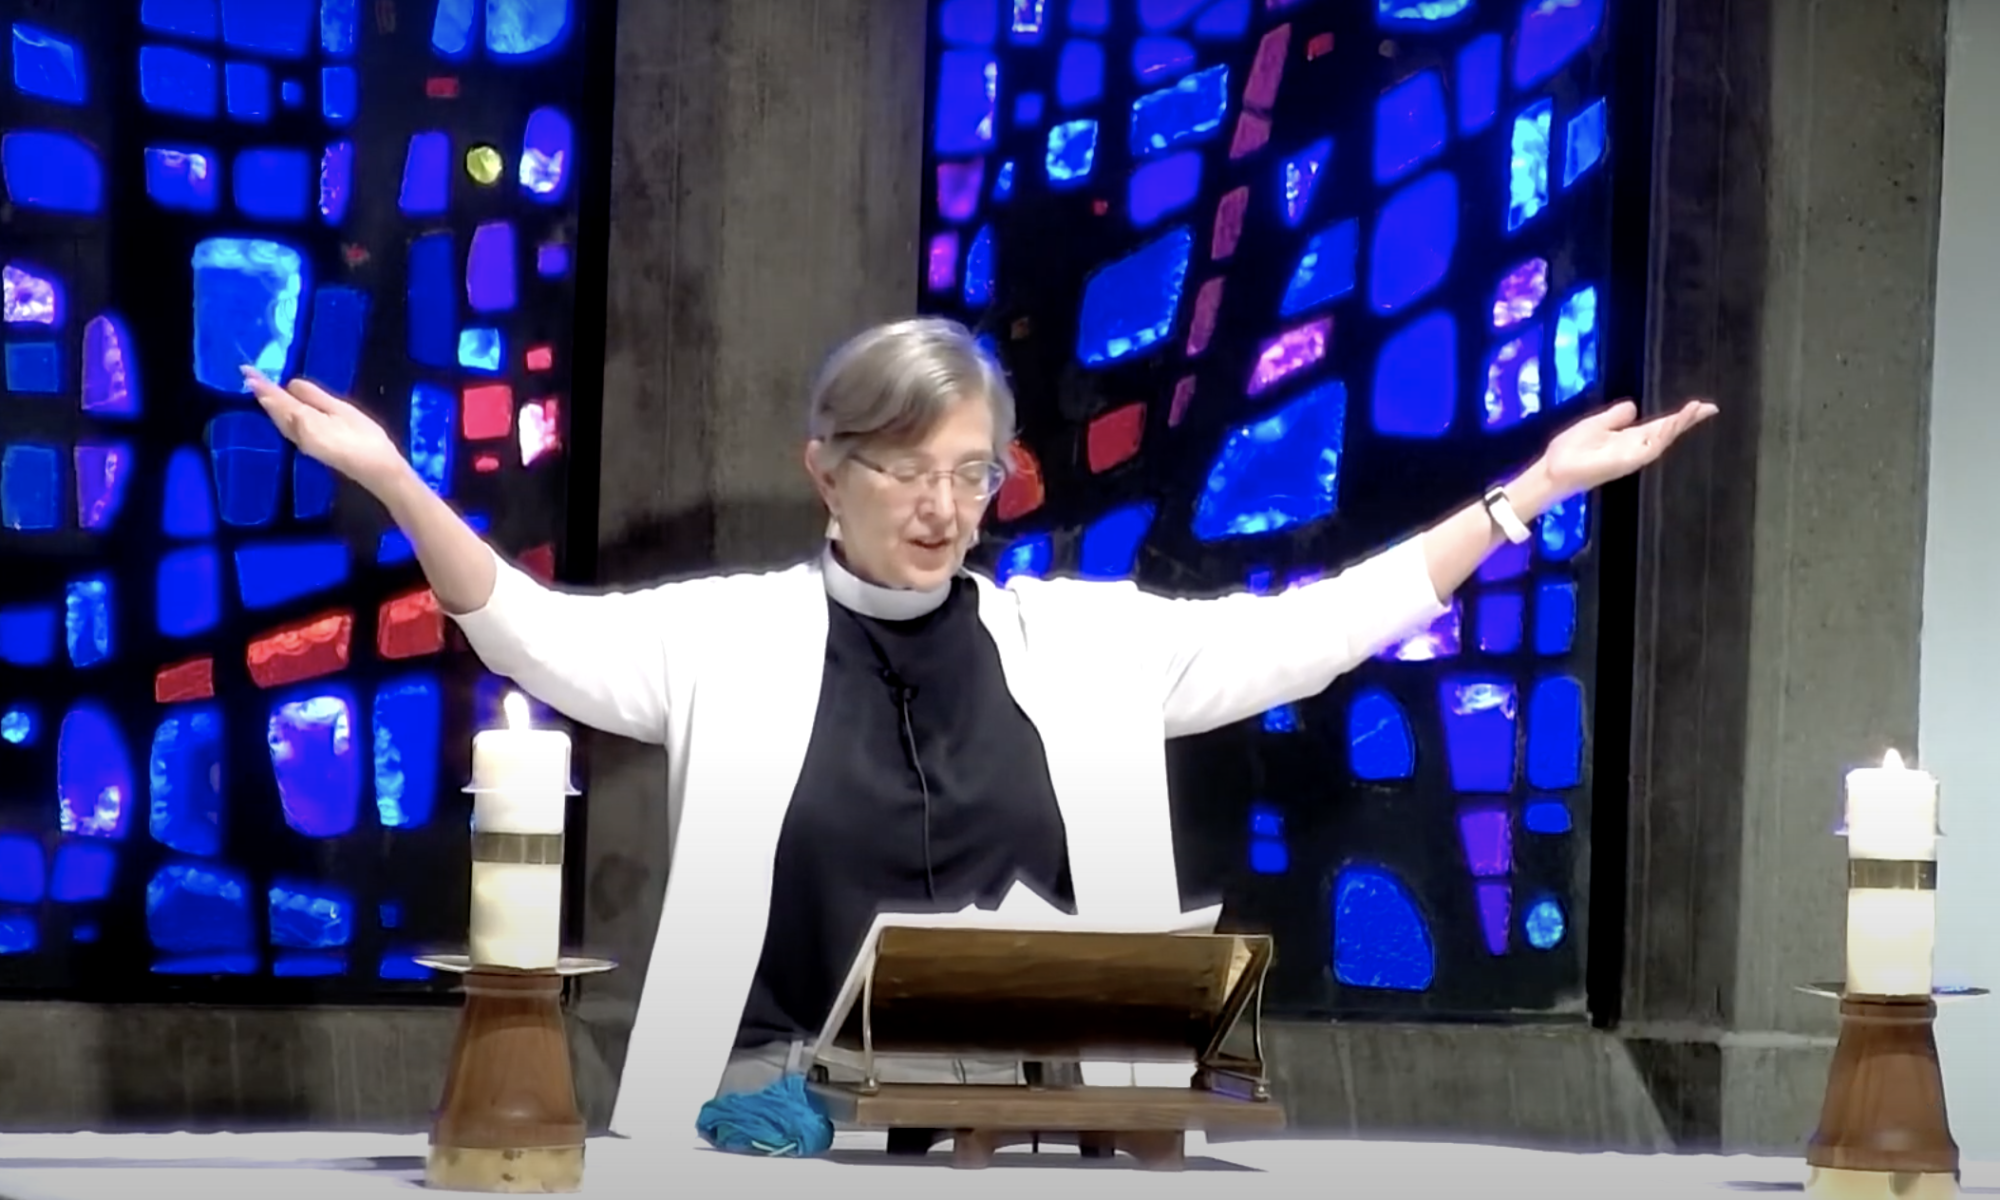 The Rev. Barbara Melosh